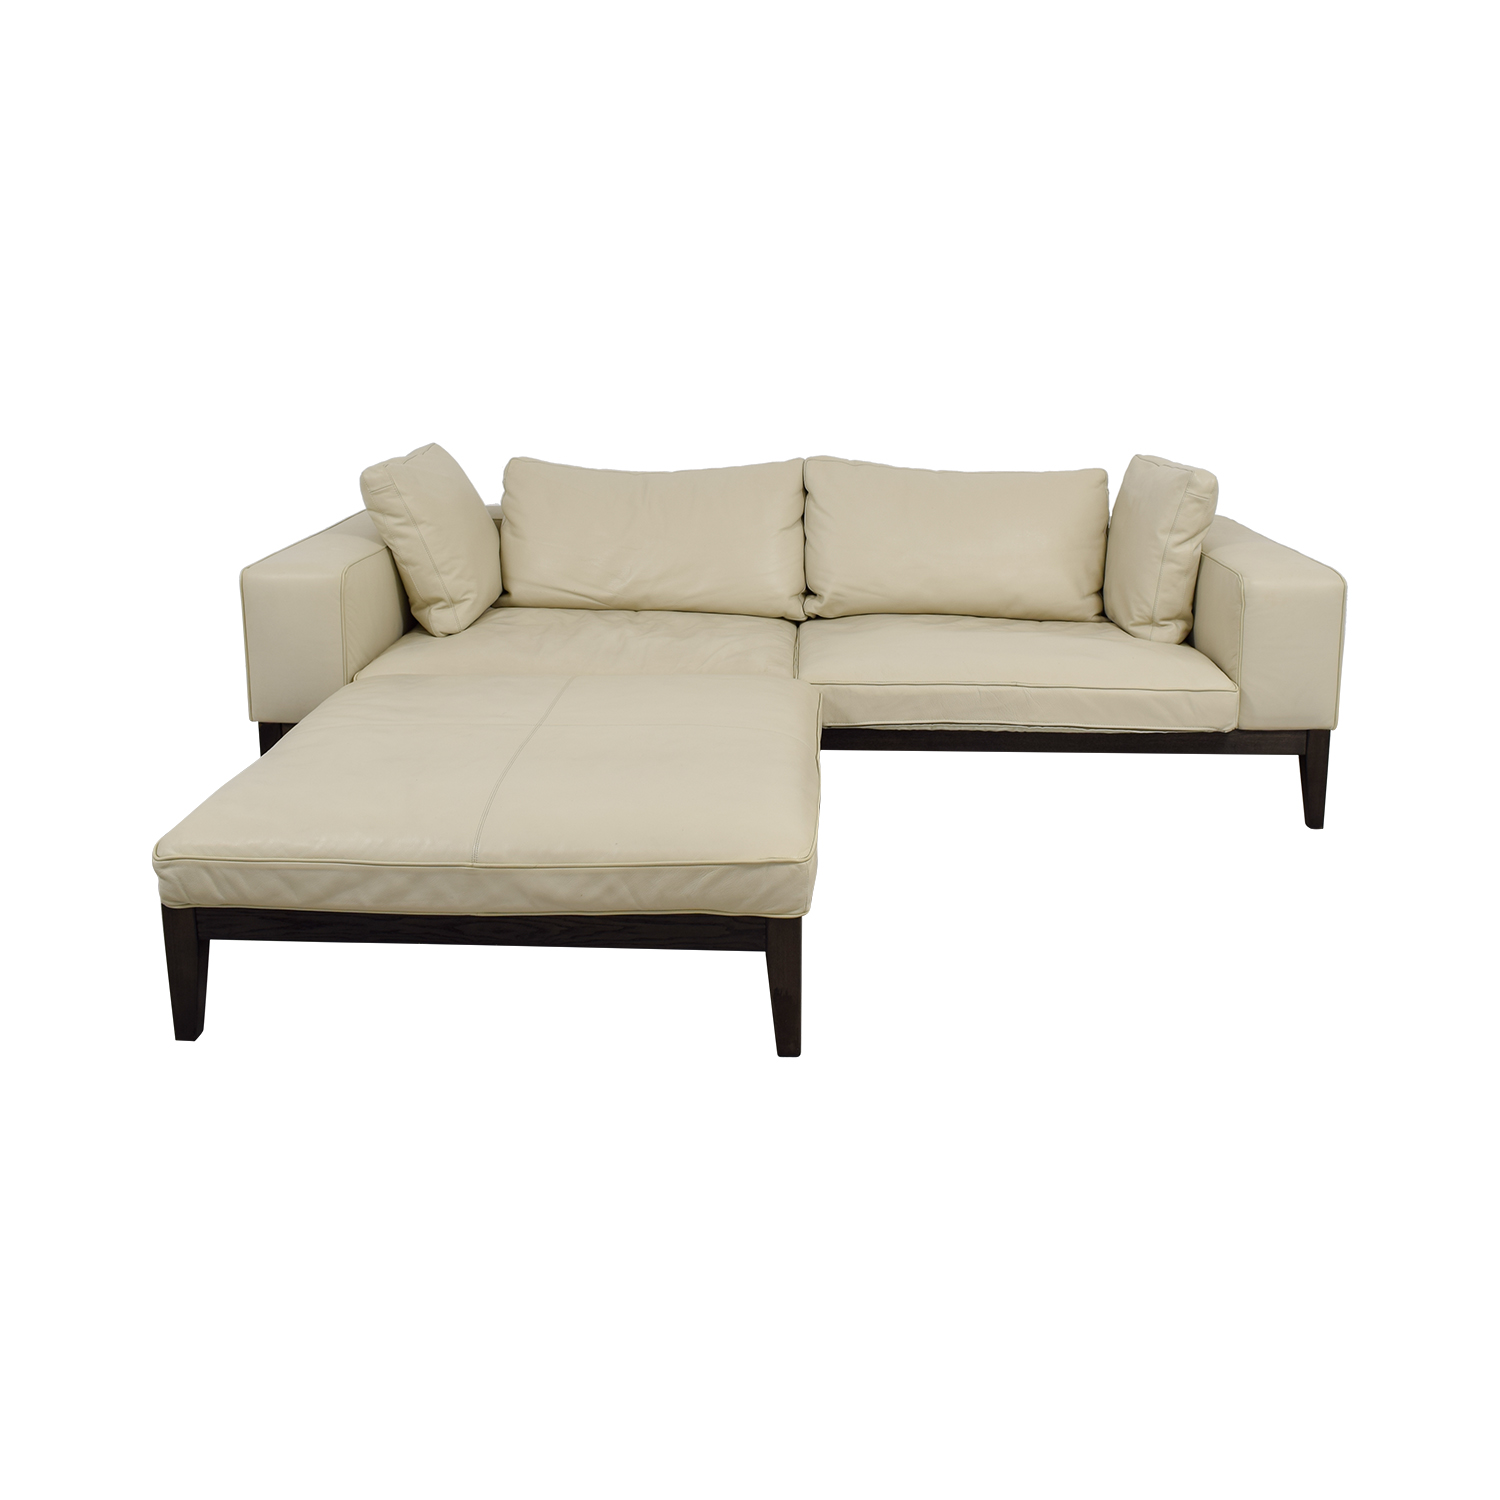 10 Best Collection Of Off White Leather Sofas: Tree Tree Contemporary Italian Off White Leather